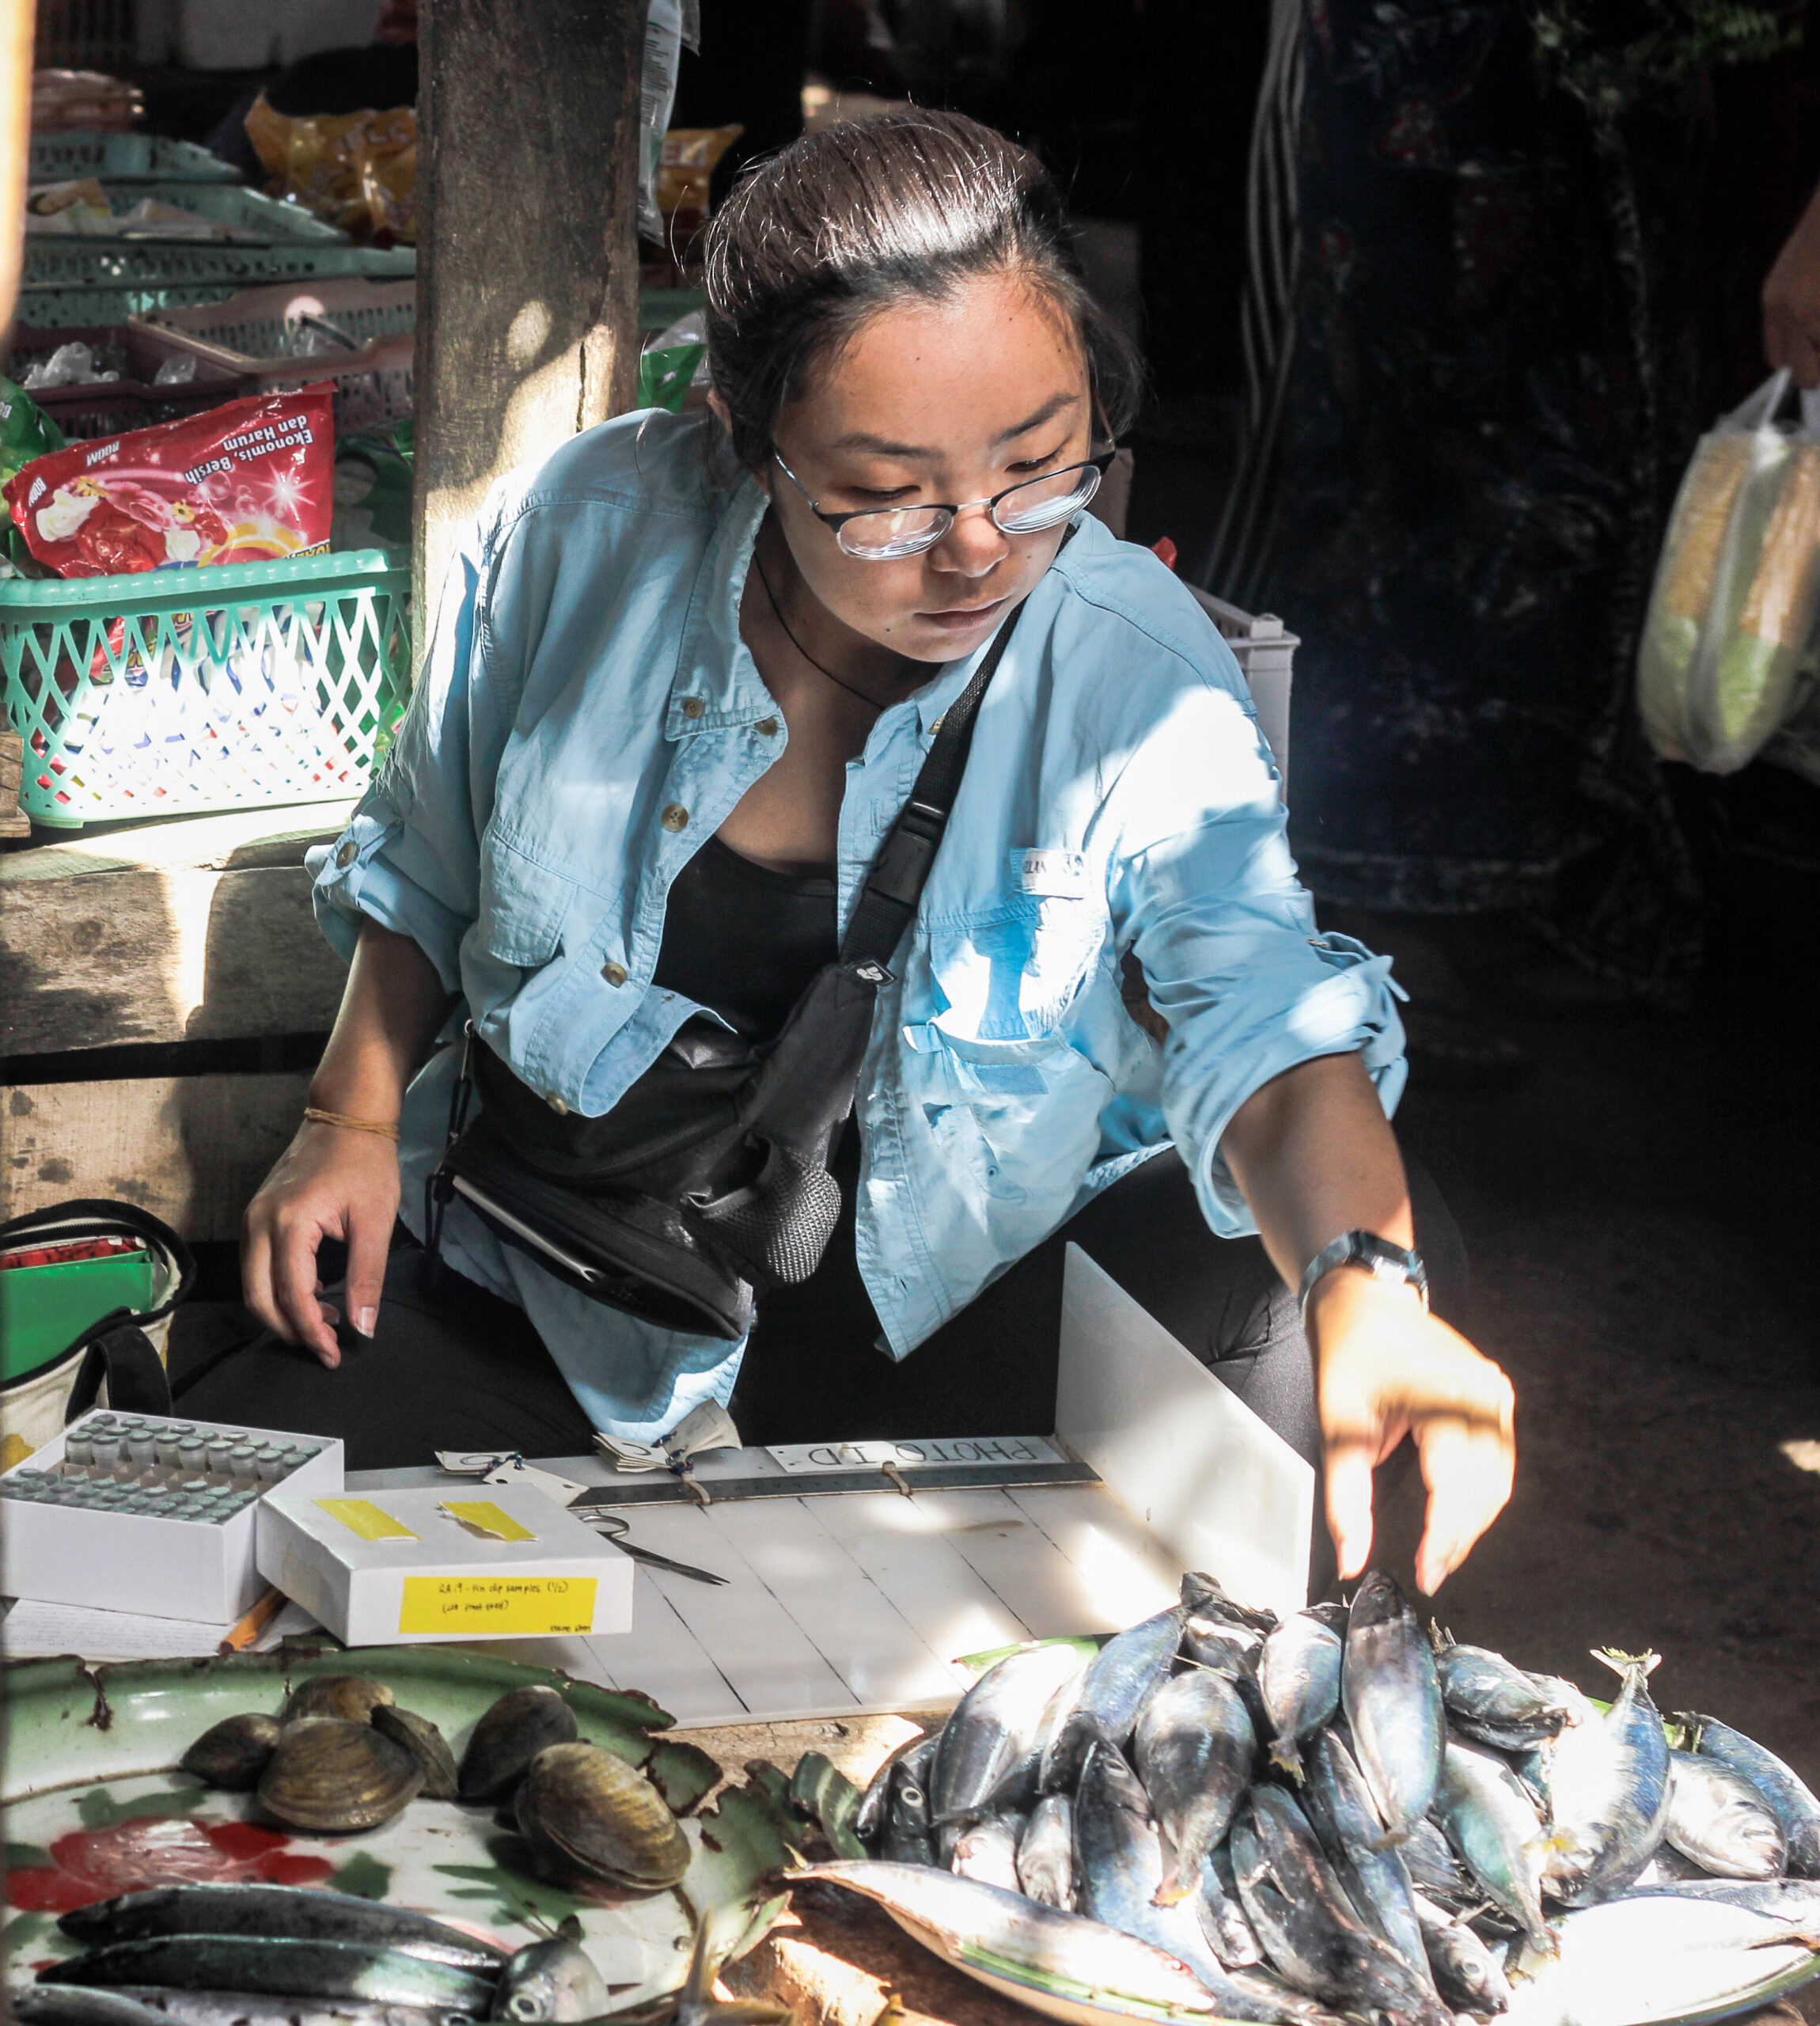 Elaine Shen collects samples of fish fins at an Indonesian market